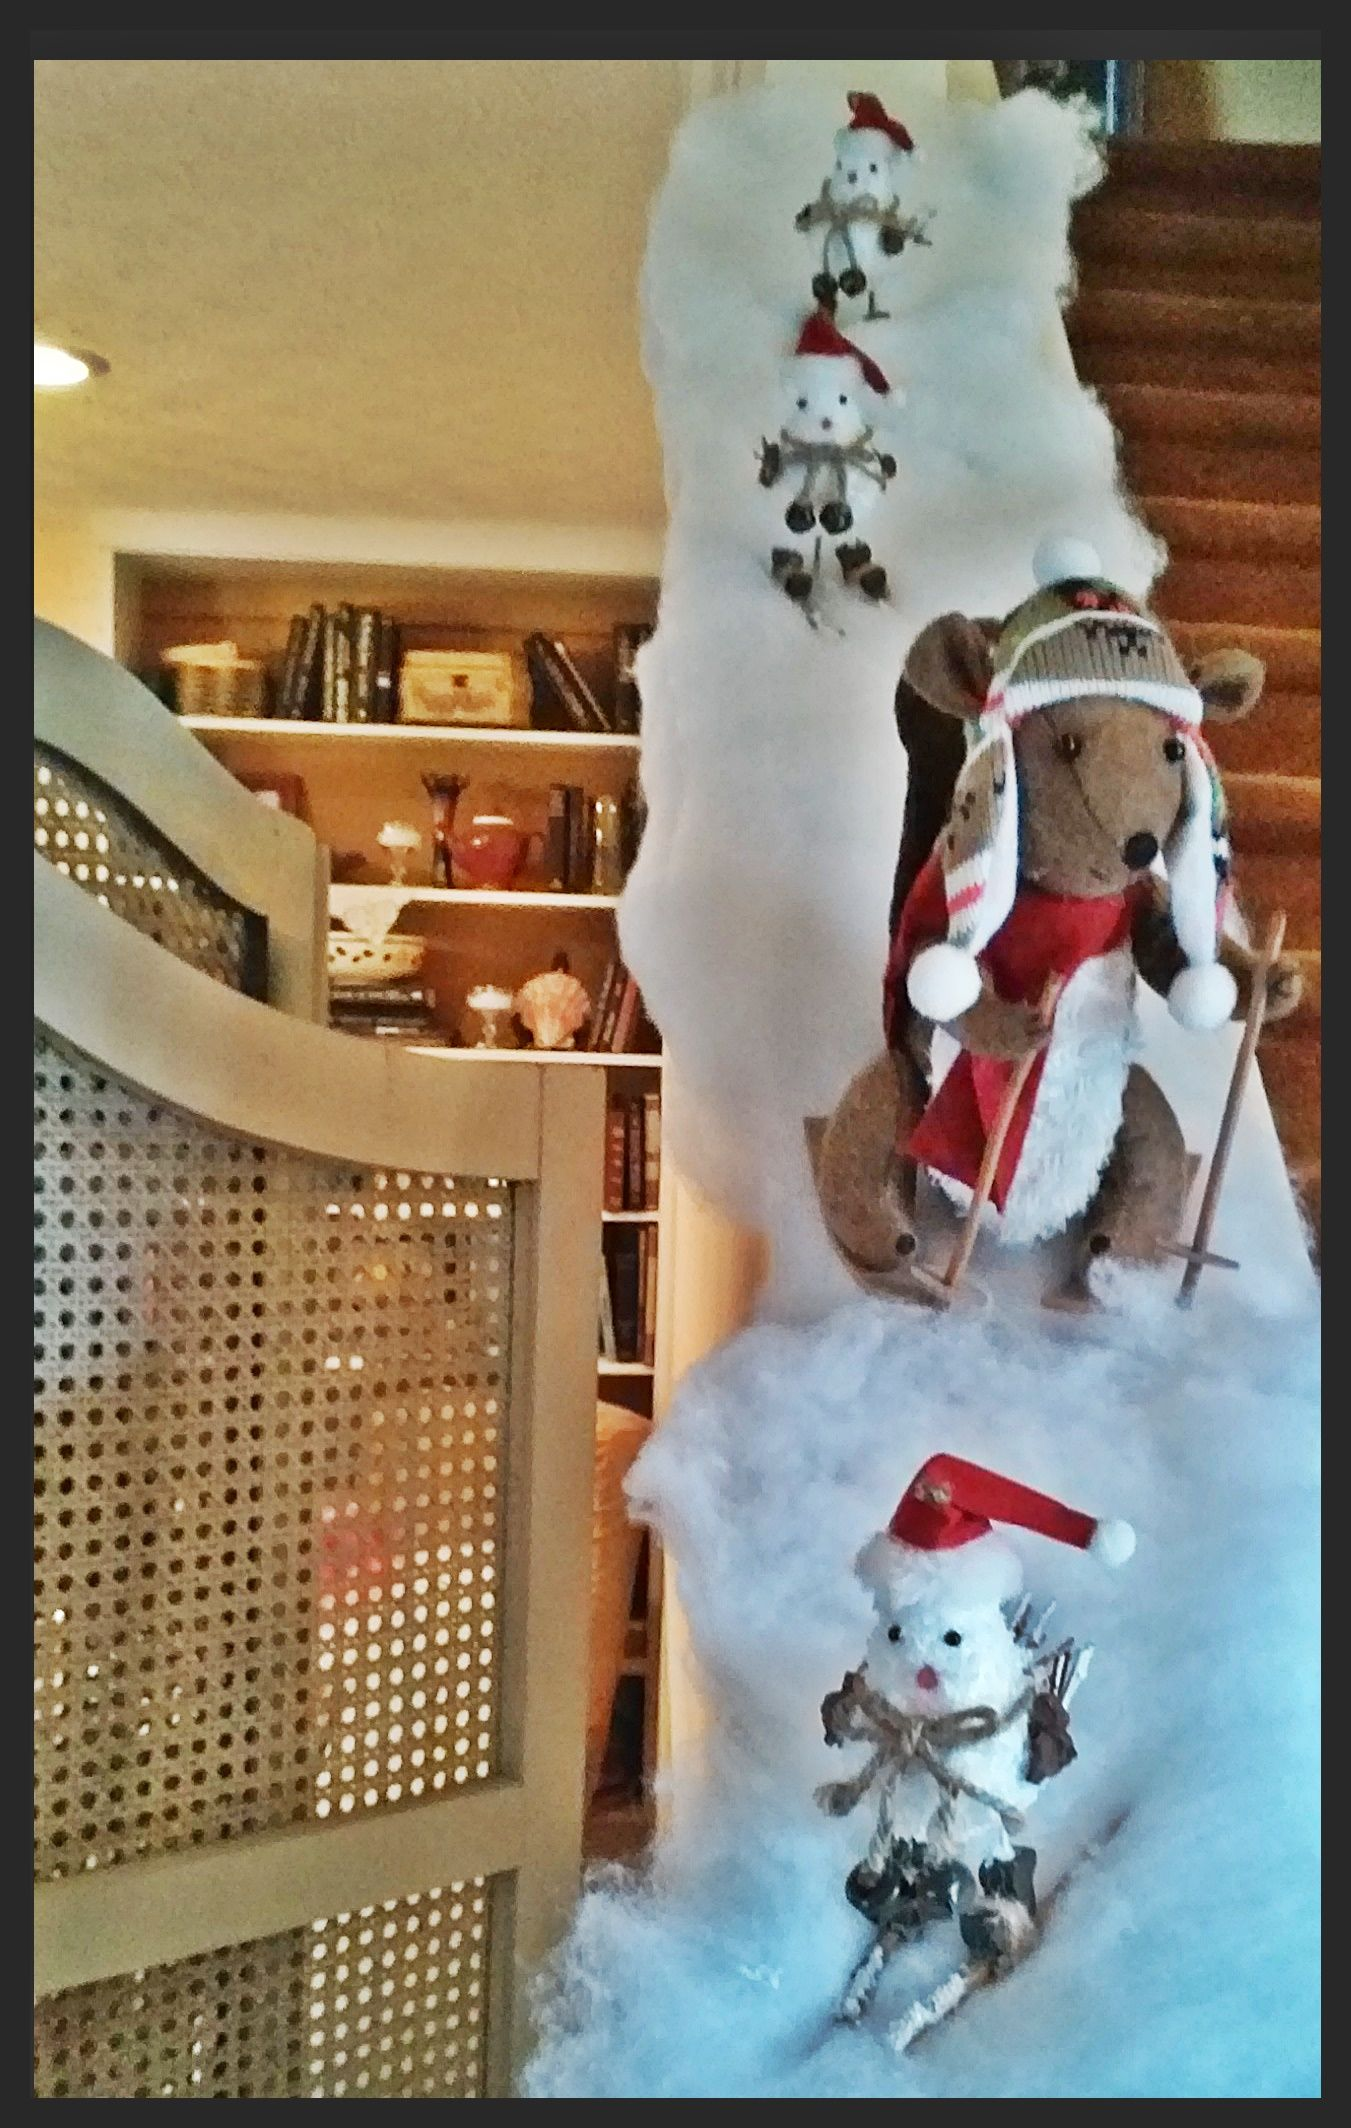 A ski slope on stair railing christmas decorations